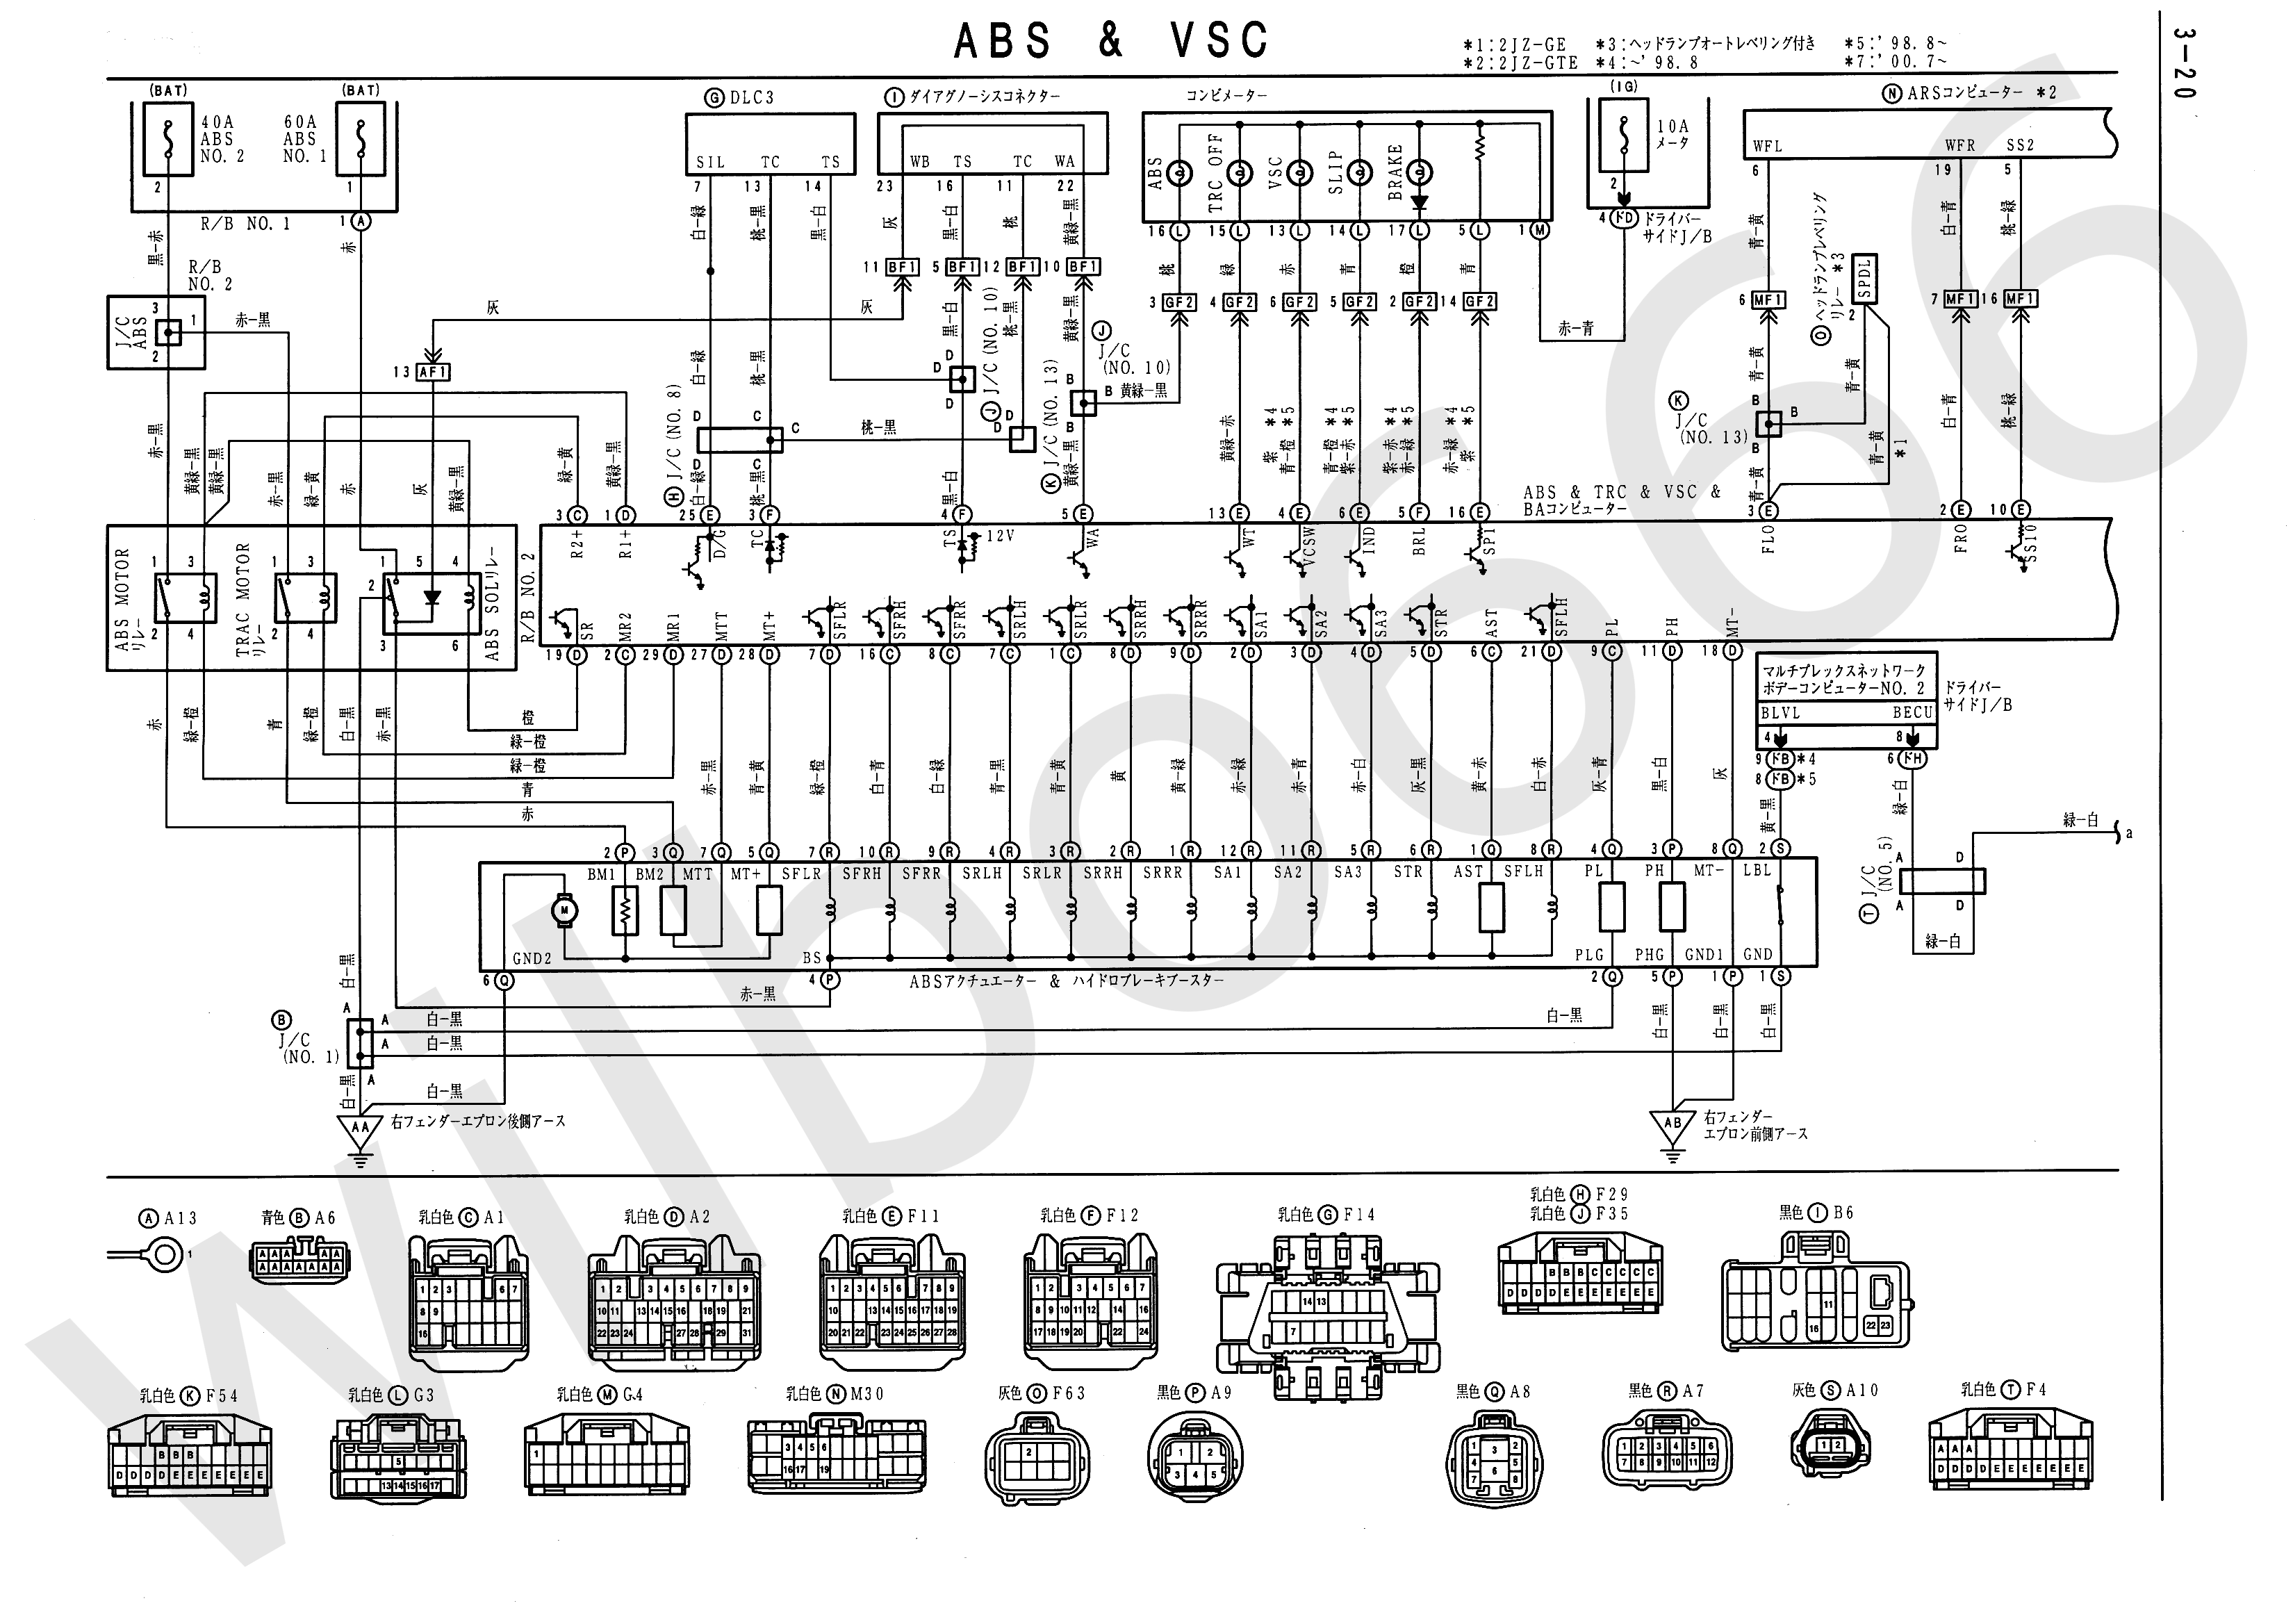 JZS161 Electrical Wiring Diagram 6748505 3 20?resize\\\\\\\\\\\\\\\\\\\\\\\\\\\\\\\\\\\\\\\\\\\\\\\\\\\\\\\\\\\\\\\\\\\\\\\\\\\\\\\\\\\\\\\\\\\\\\\\\\\\\\\=665%2C471 lennox furnace wiring diagram & solved wiring diagram for longwood furnance wiring diagram at gsmx.co